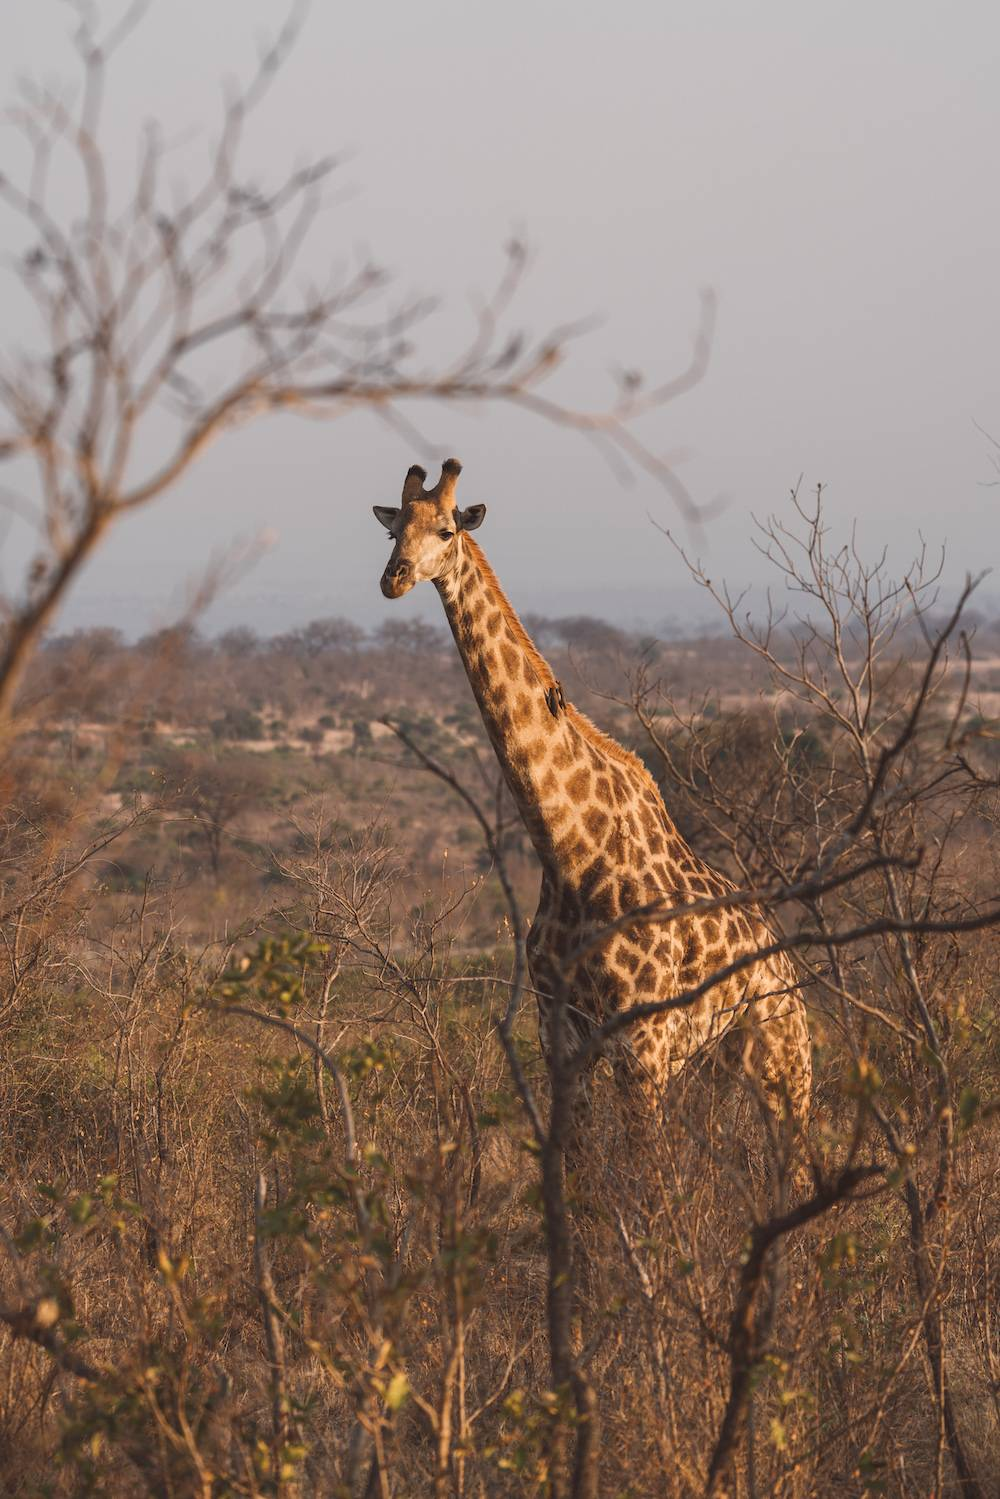 Tall giraffes in kruger national park safari